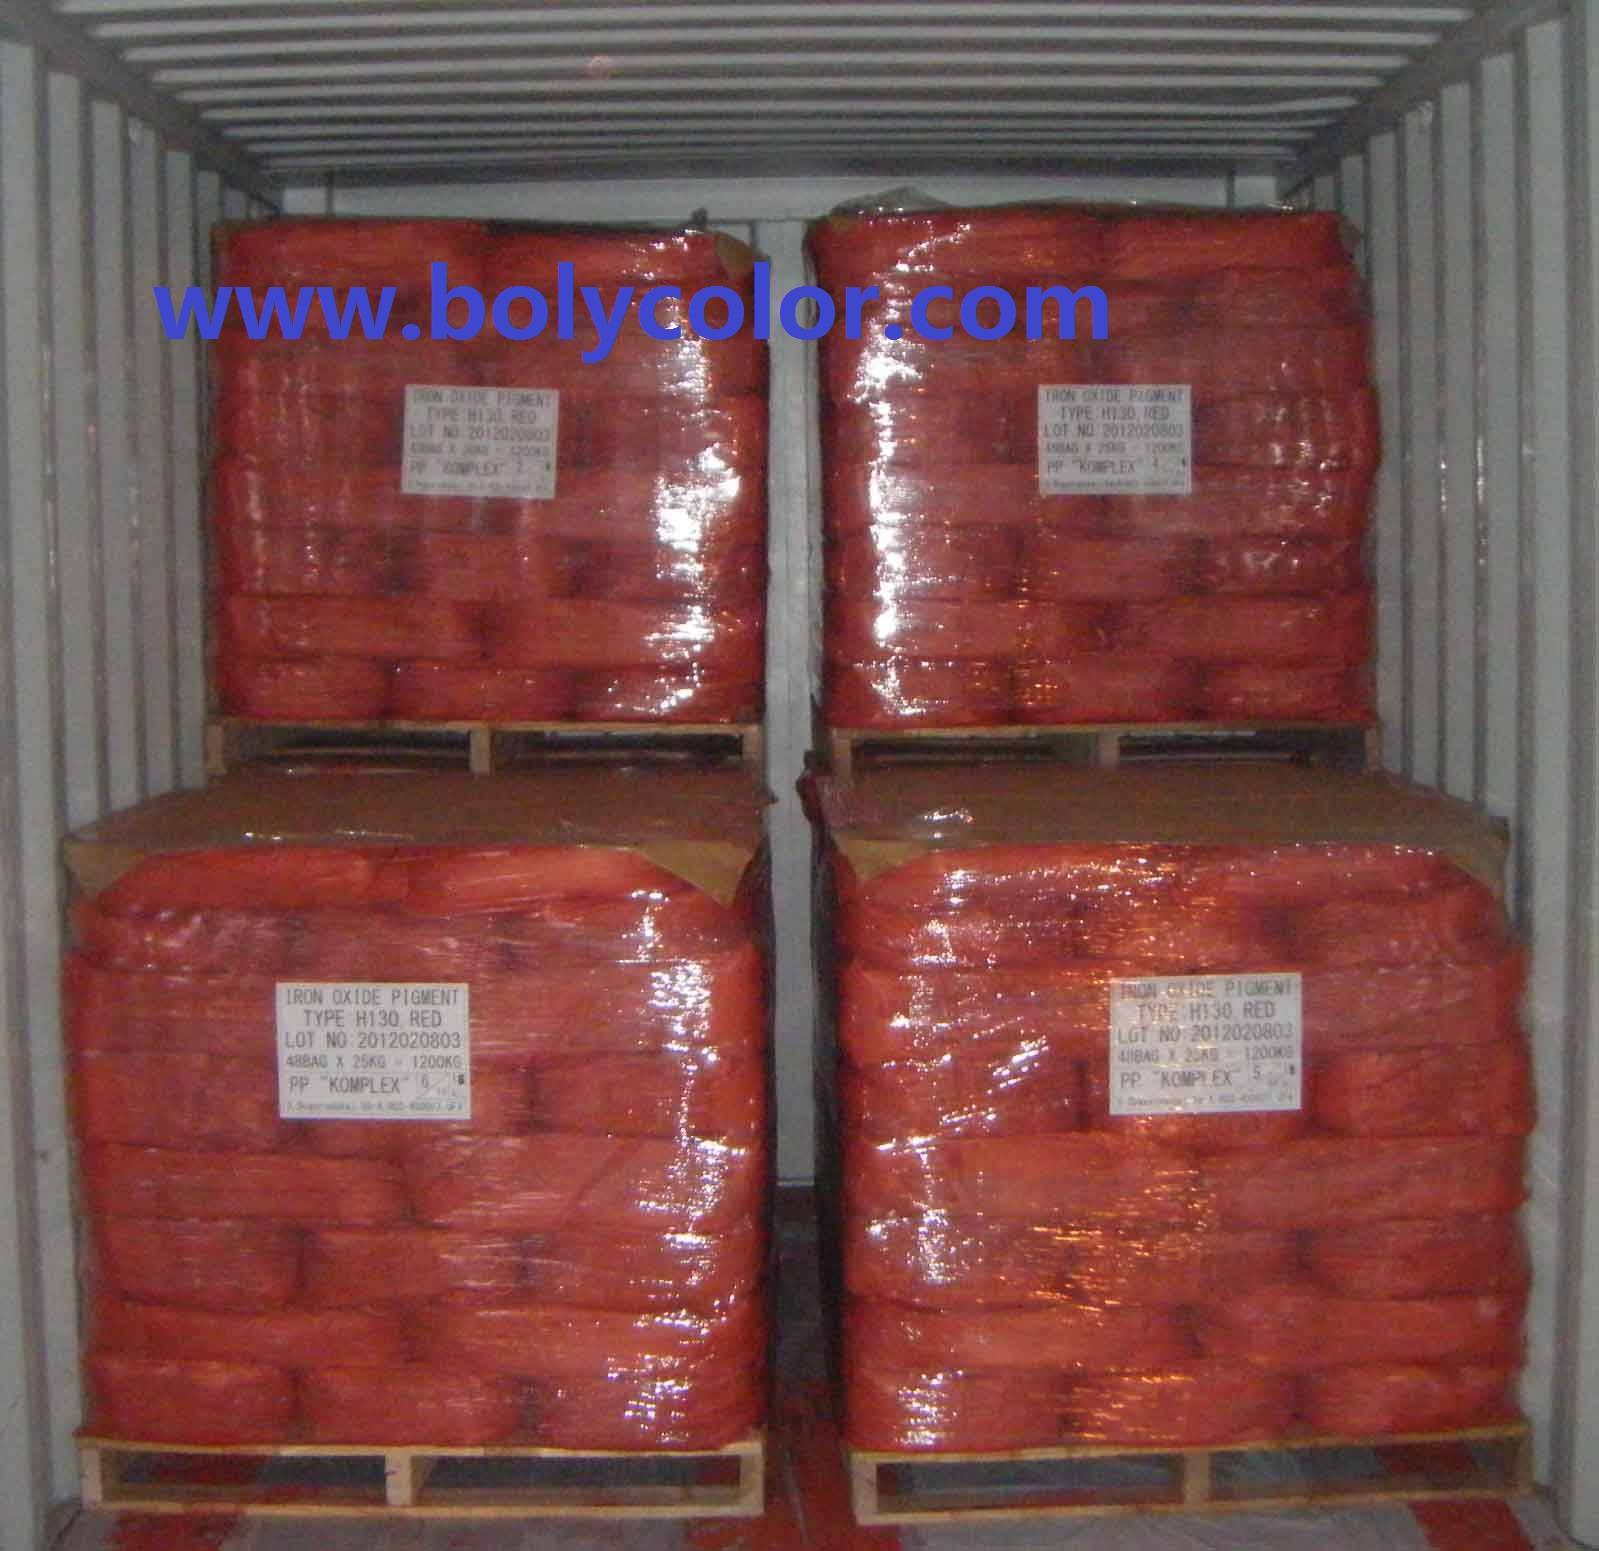 Supply Iron Oxide Red from Bolycolor